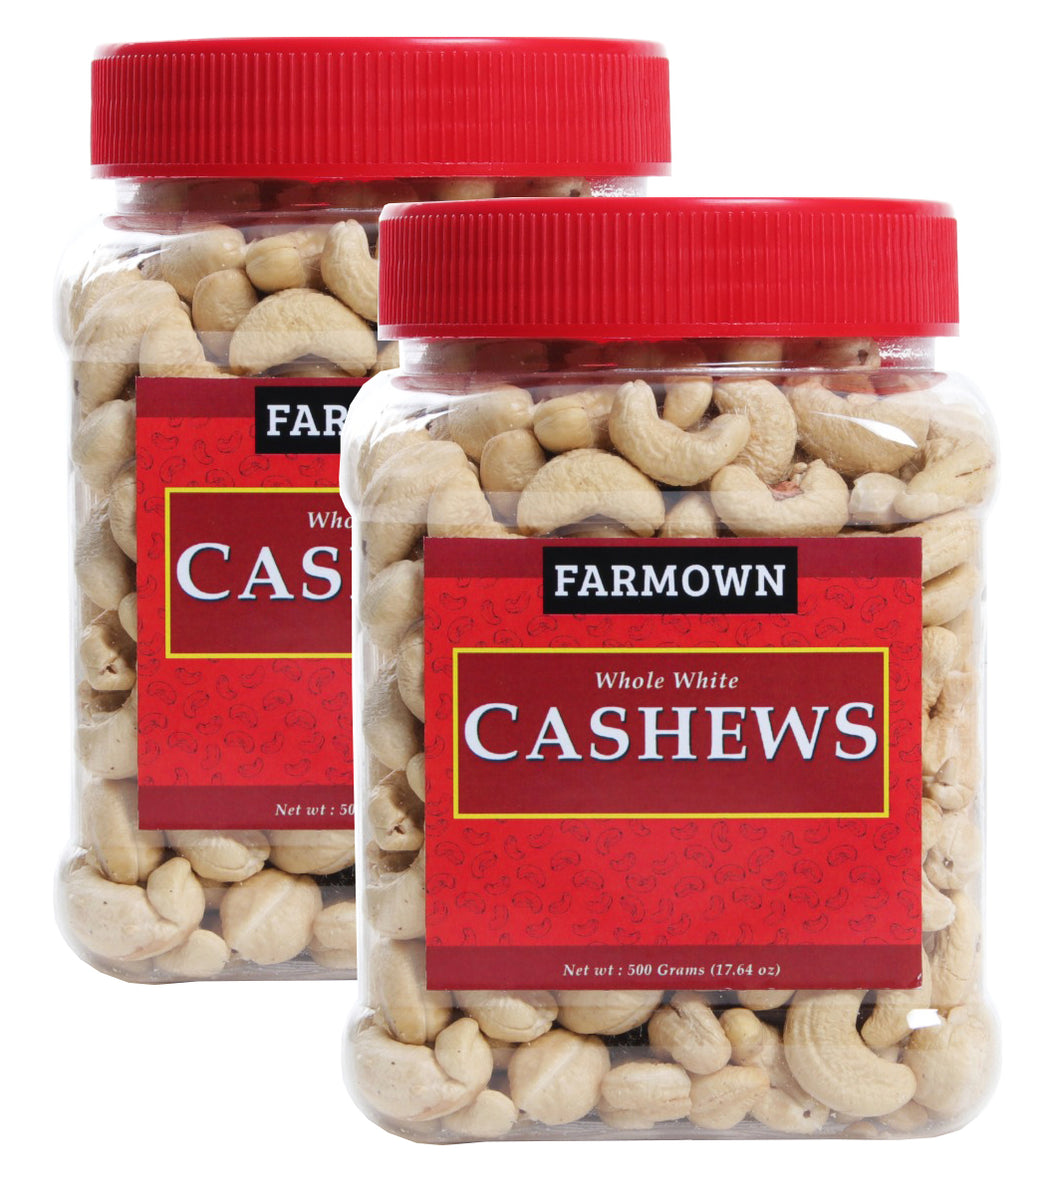 FarmOwn Whole Cashew Nut W320 Regular Size Cashews Kaju 1Kg